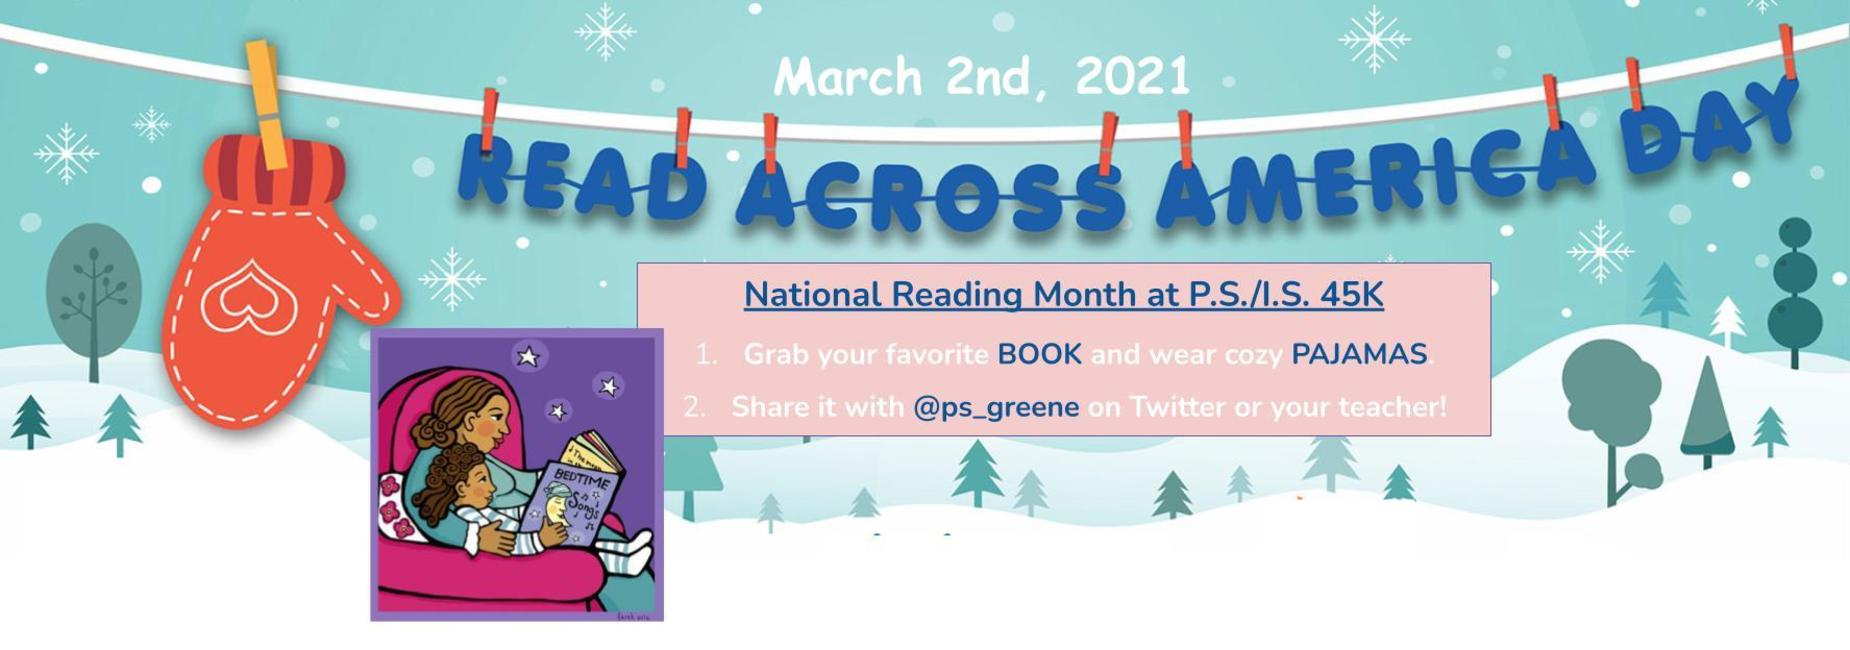 March 2nd, 2021 Read Across America Day at P.S./I.S. 45K    Grab your favorite BOOK and wear cozy PAJAMAS. Share it with @ps_greene on Twitter or your teacher!